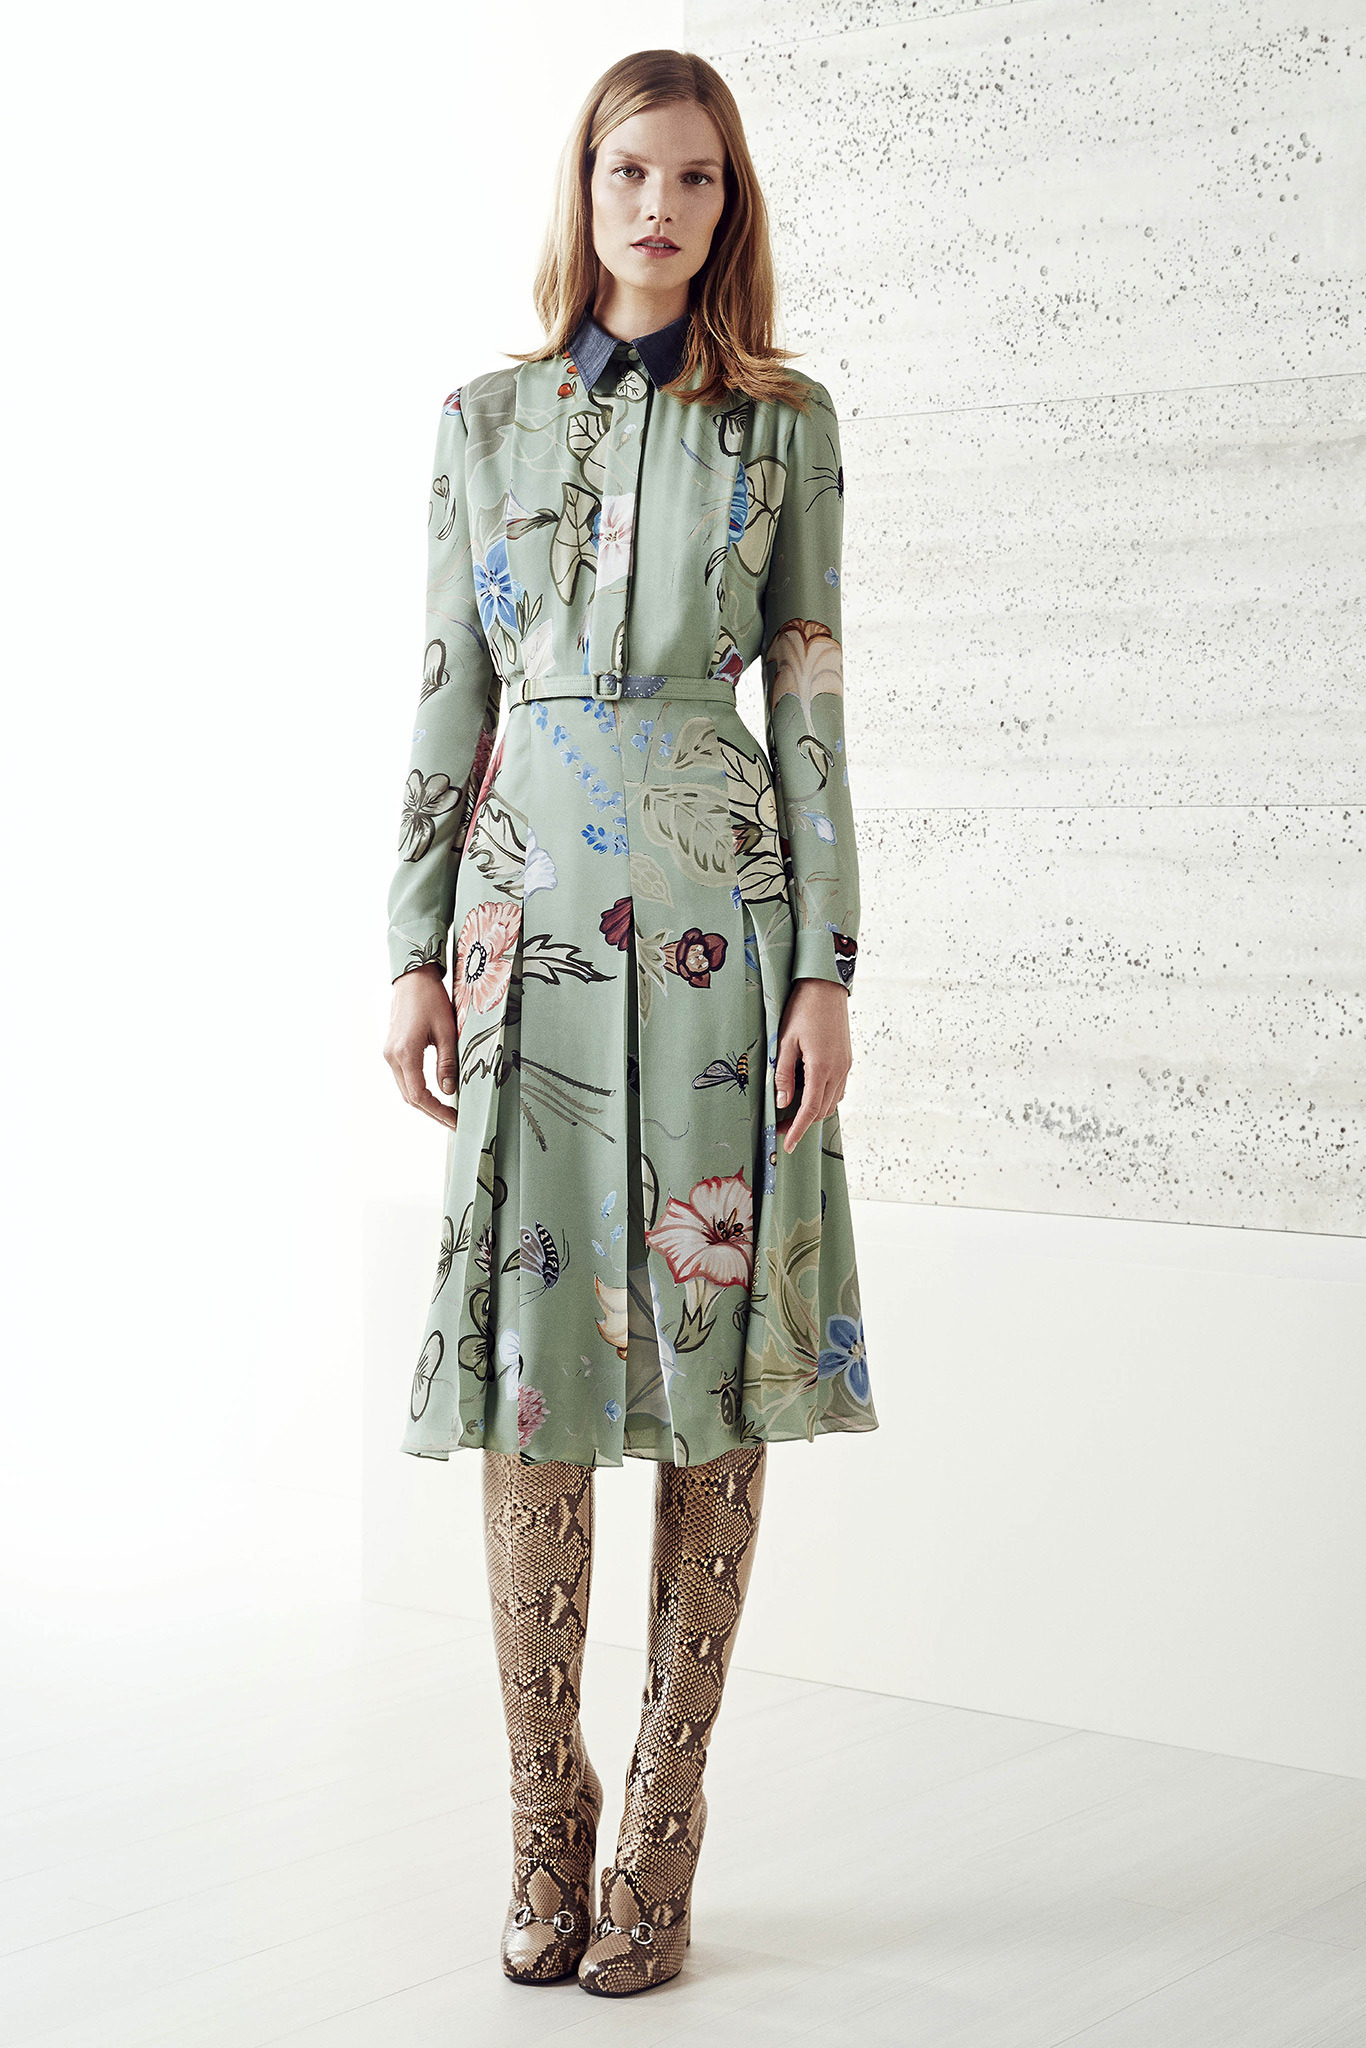 Suvi Koponen | Gucci Resort 2015 (Photography: courtesy of Gucci via Style.com)